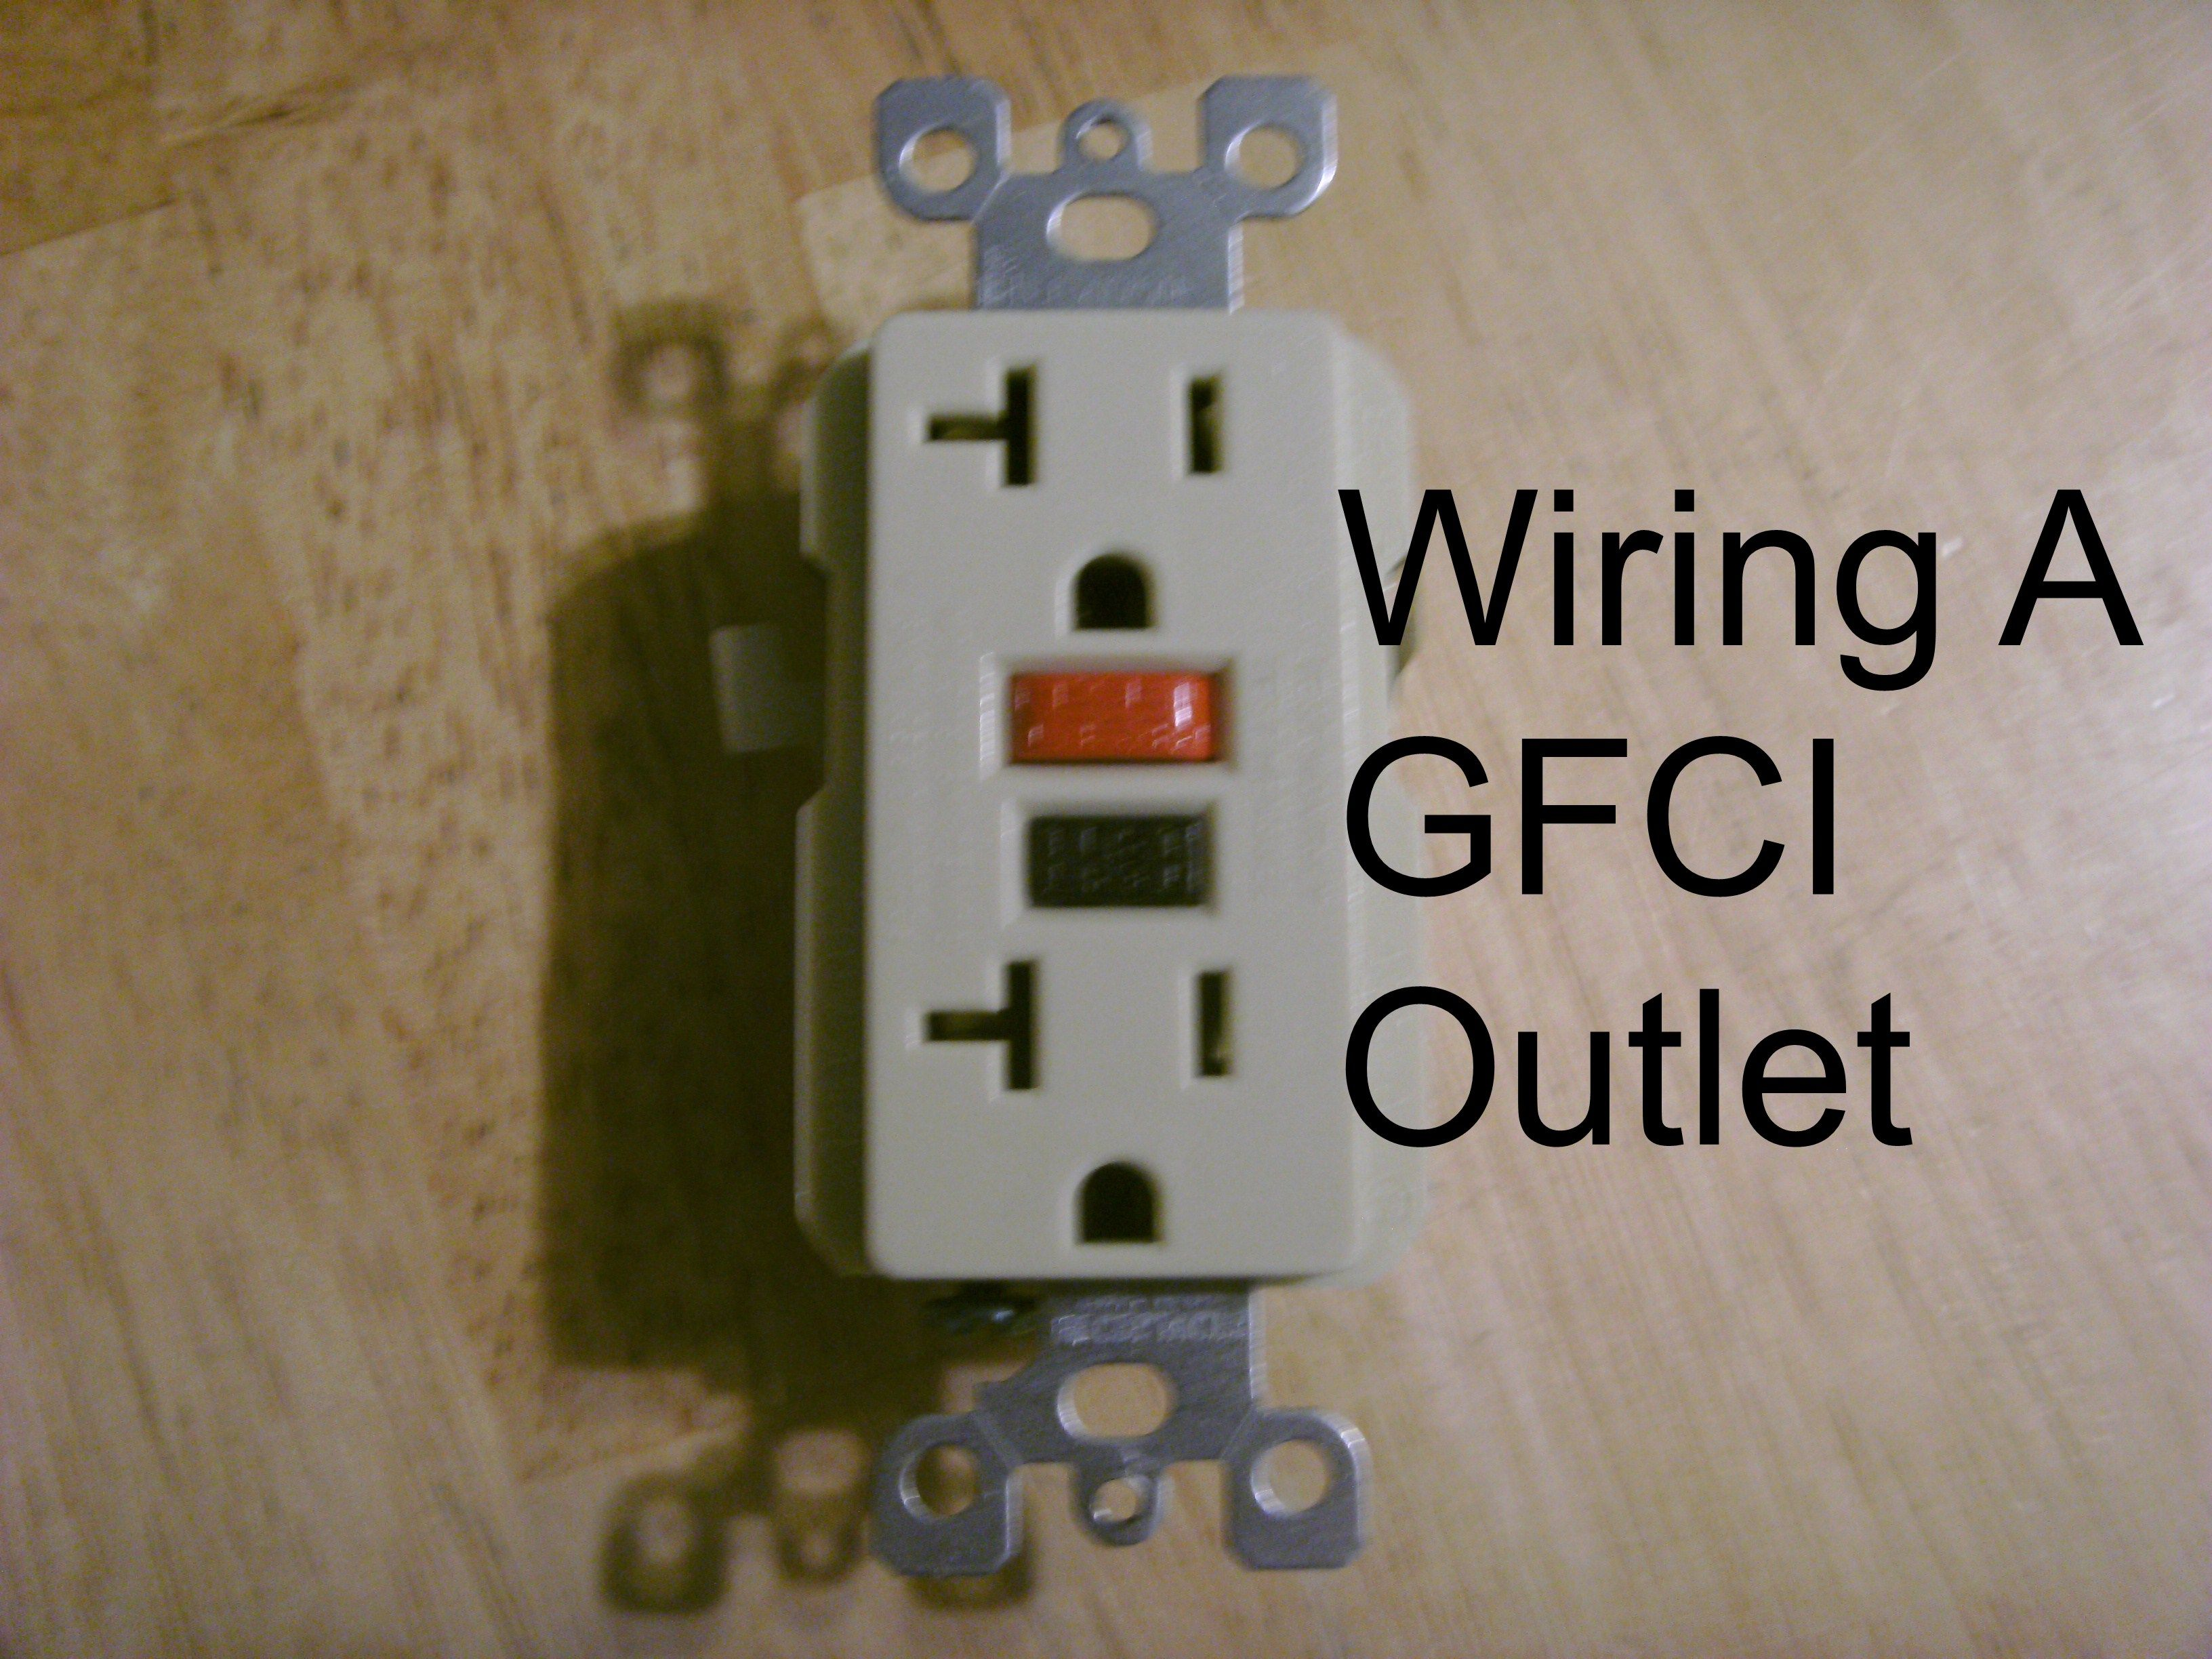 Home Wiring Made Easy Best Electrical Circuit Diagram Diy Improvement Pinterest How To Install A Gfci Outlet Improvements Wire Rh Com House Simple